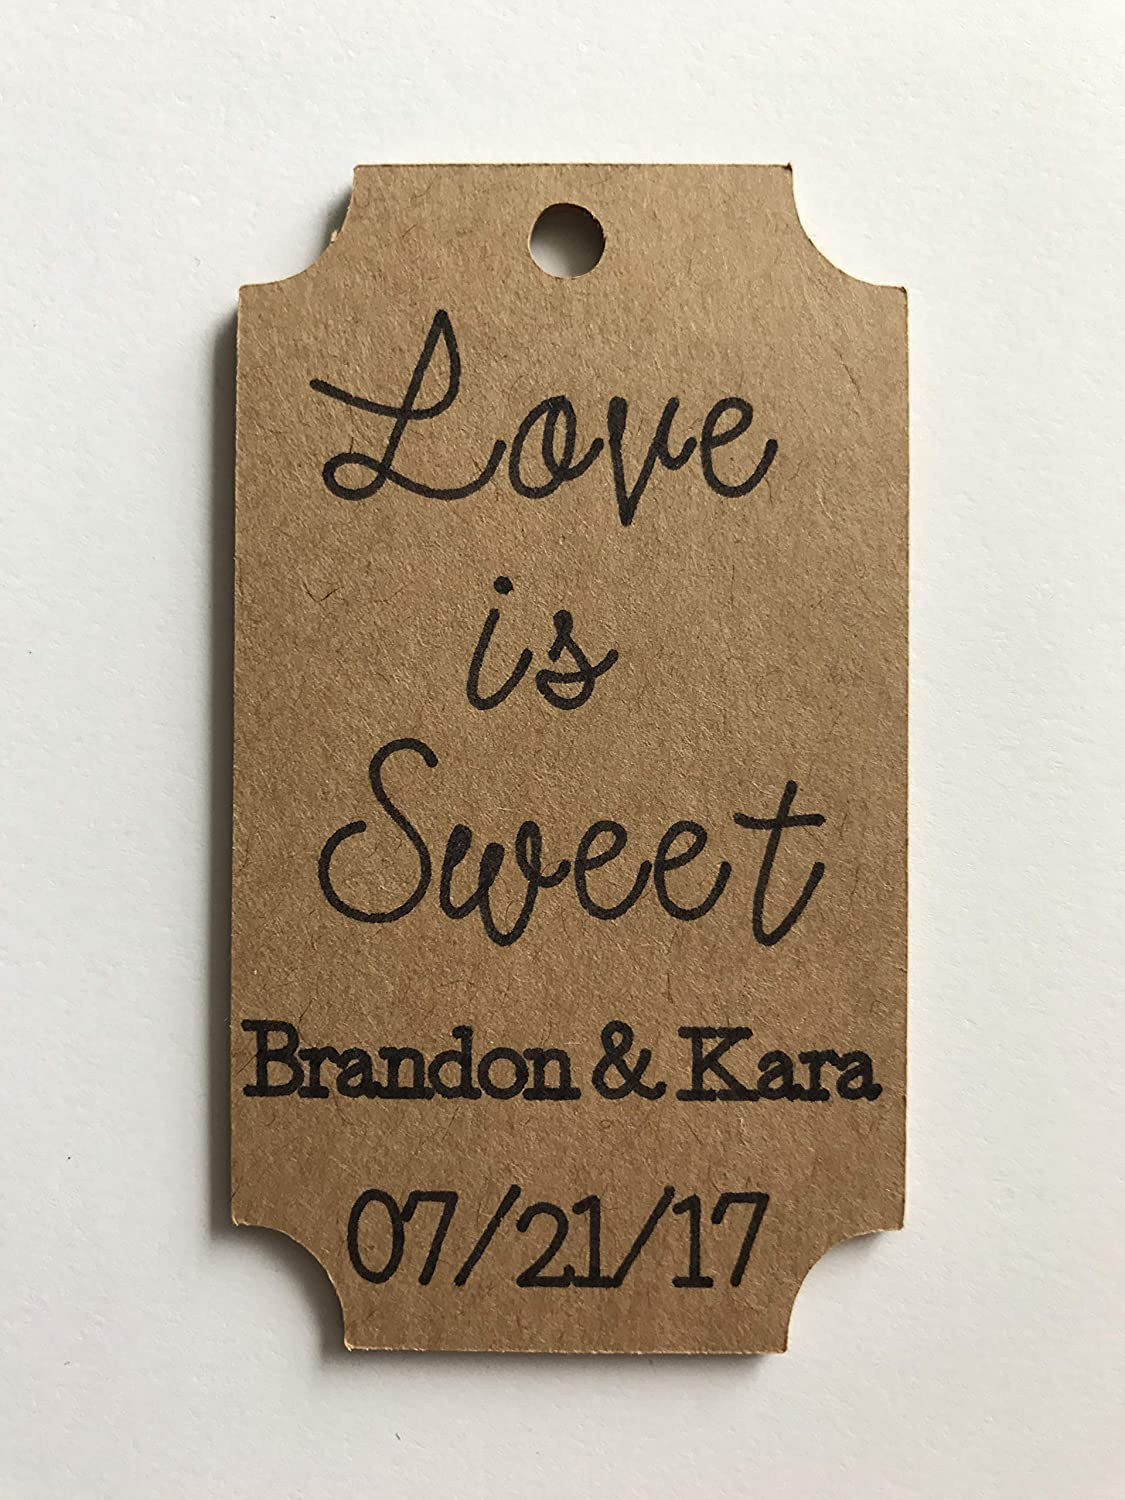 Custom Wedding Favors 3 inch Favor Tags Love is Sweet Favors Love is Sweet Wedding Decor Custom Love is Sweet Favor Tags -Kraft Favor Tags 25 Tags Wedding Shower Favors